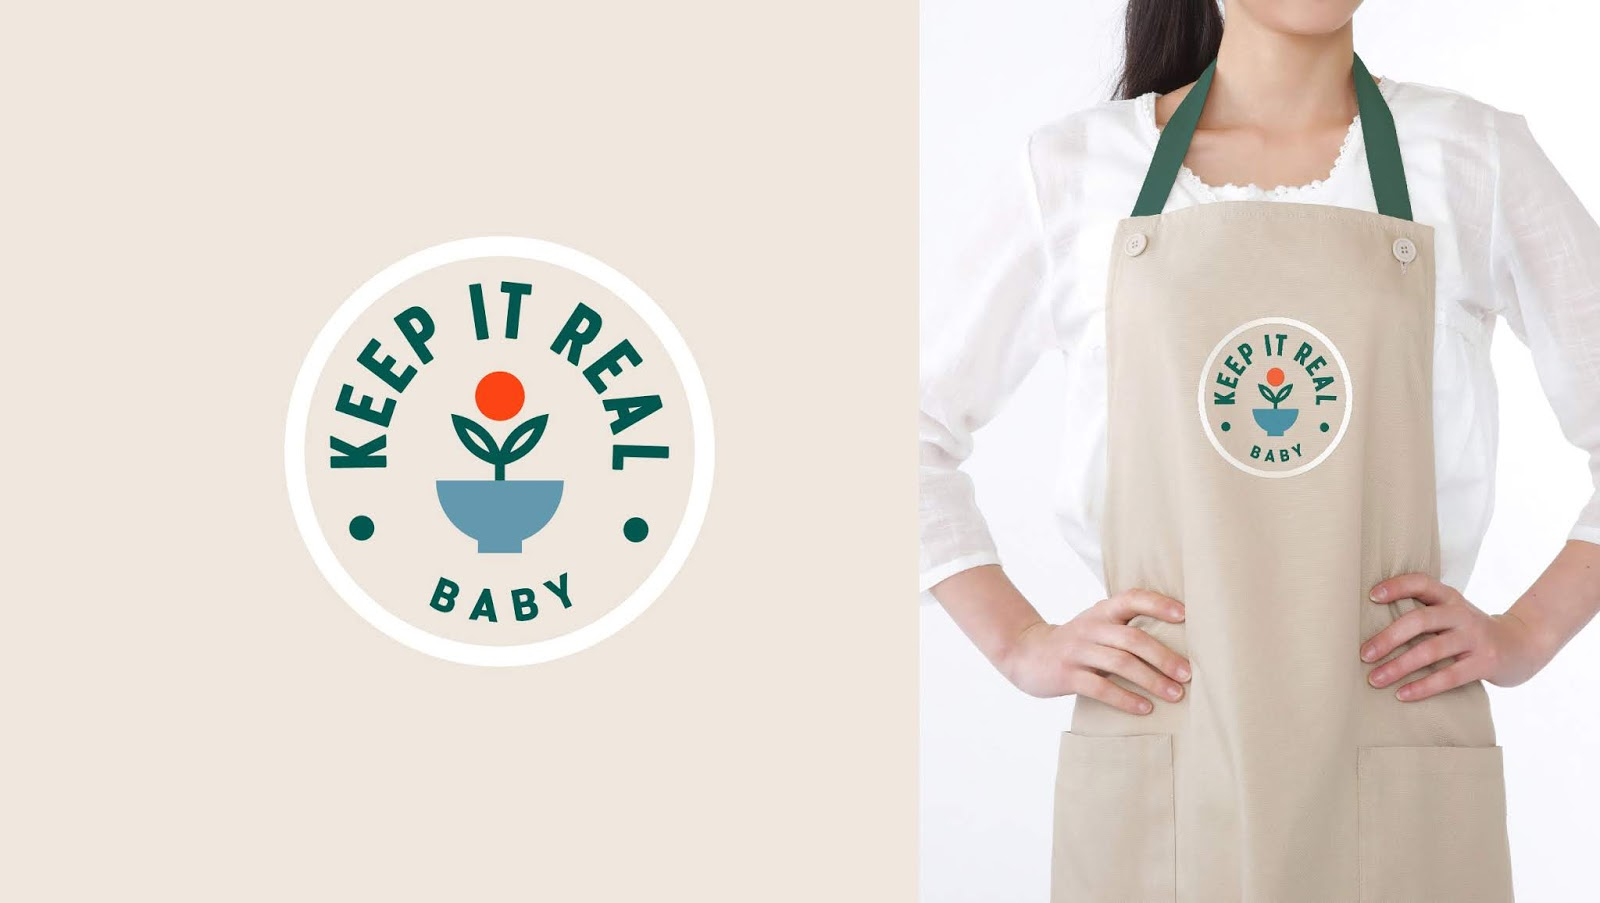 Keep It Real Baby Fresh Organic Baby Food On Packaging Of The